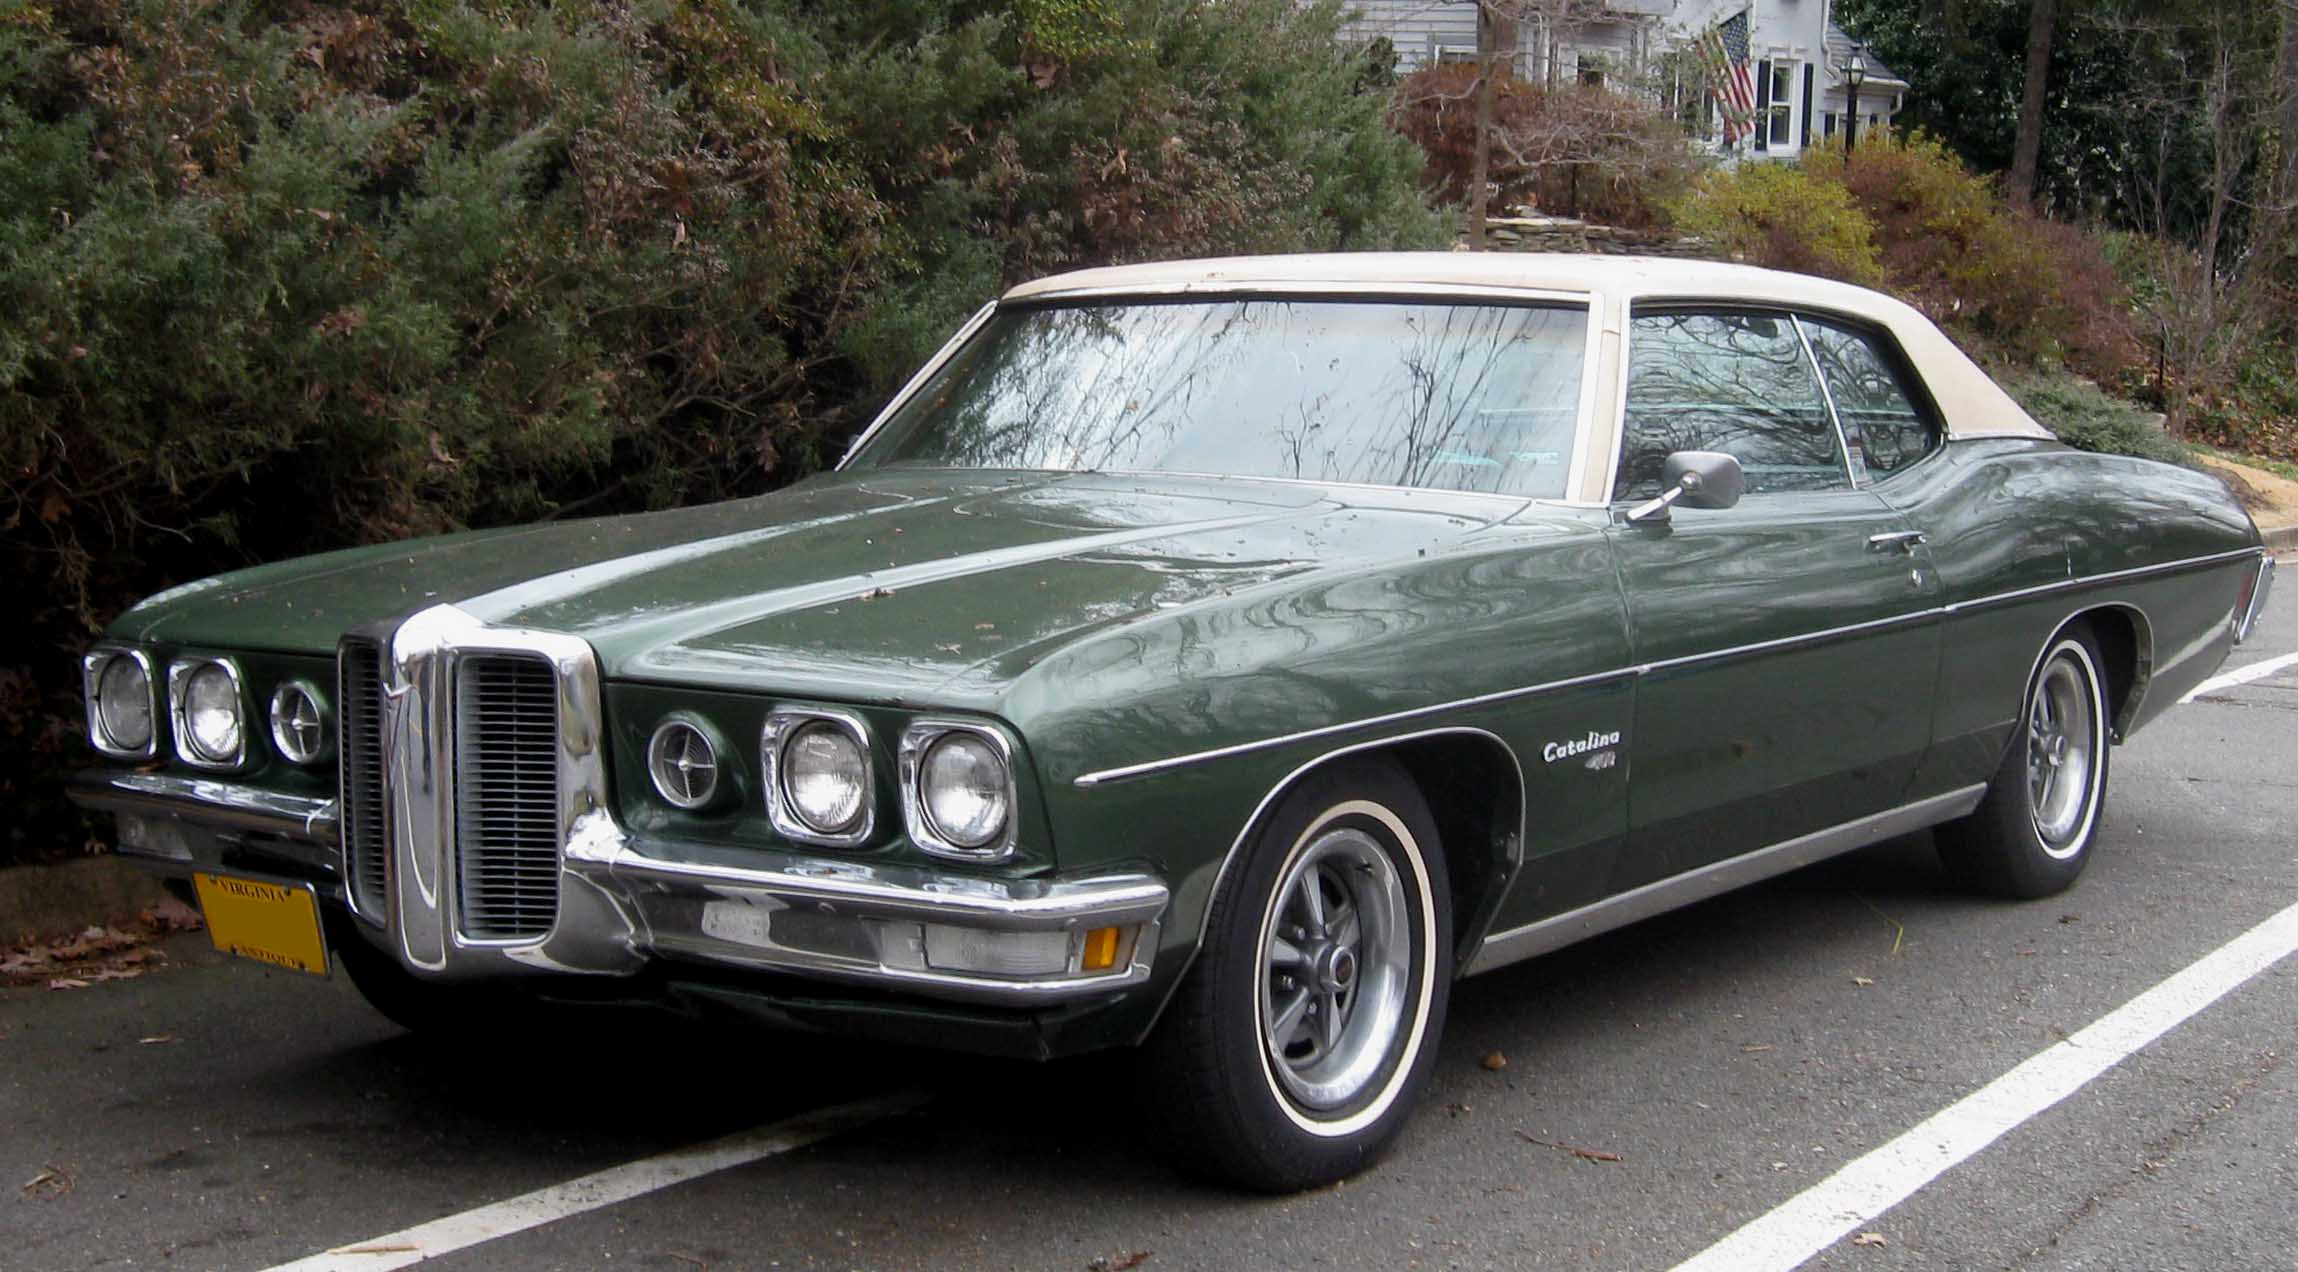 File:Pontiac Catalina front.jpg - Wikimedia Commons